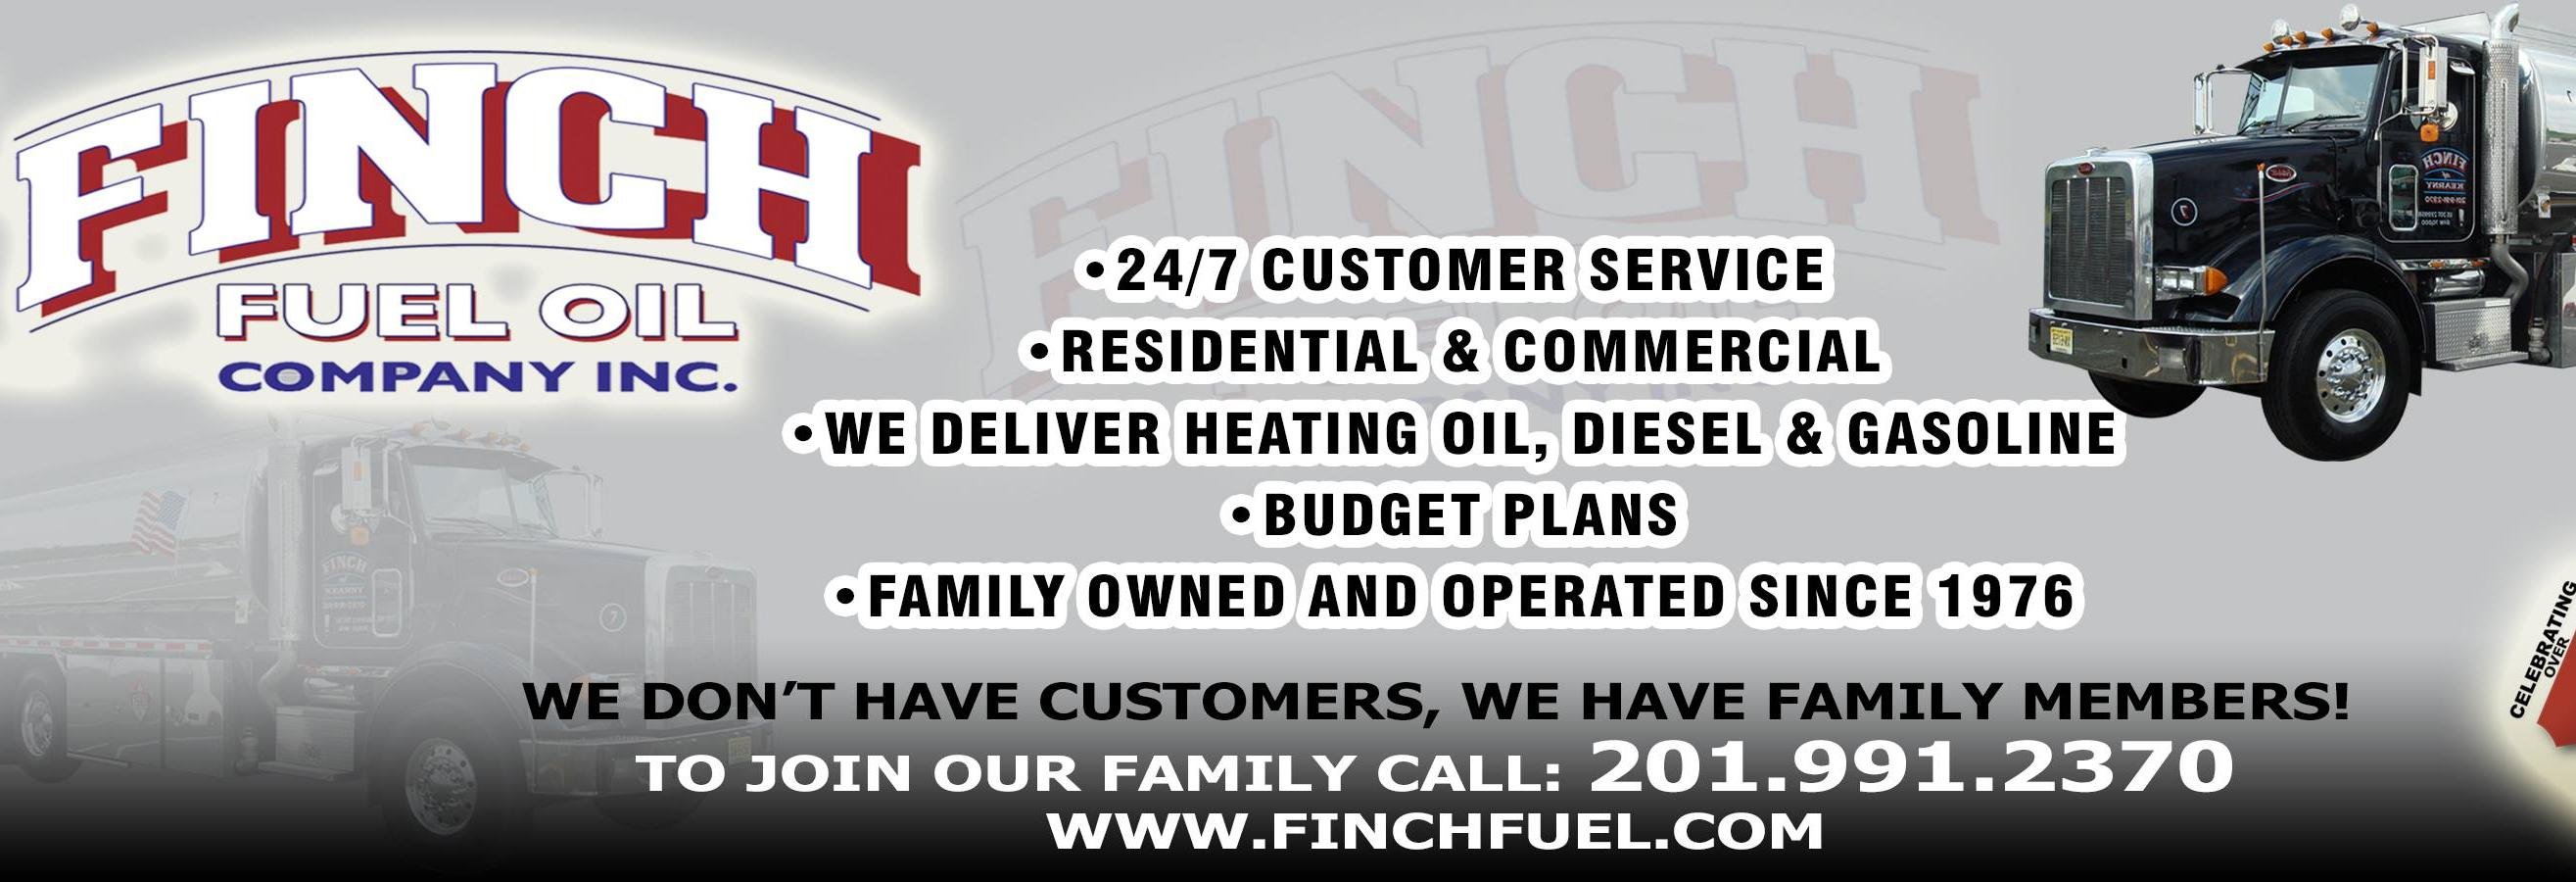 Finch Fuel Oil Co., Inc. in New Jersey banner